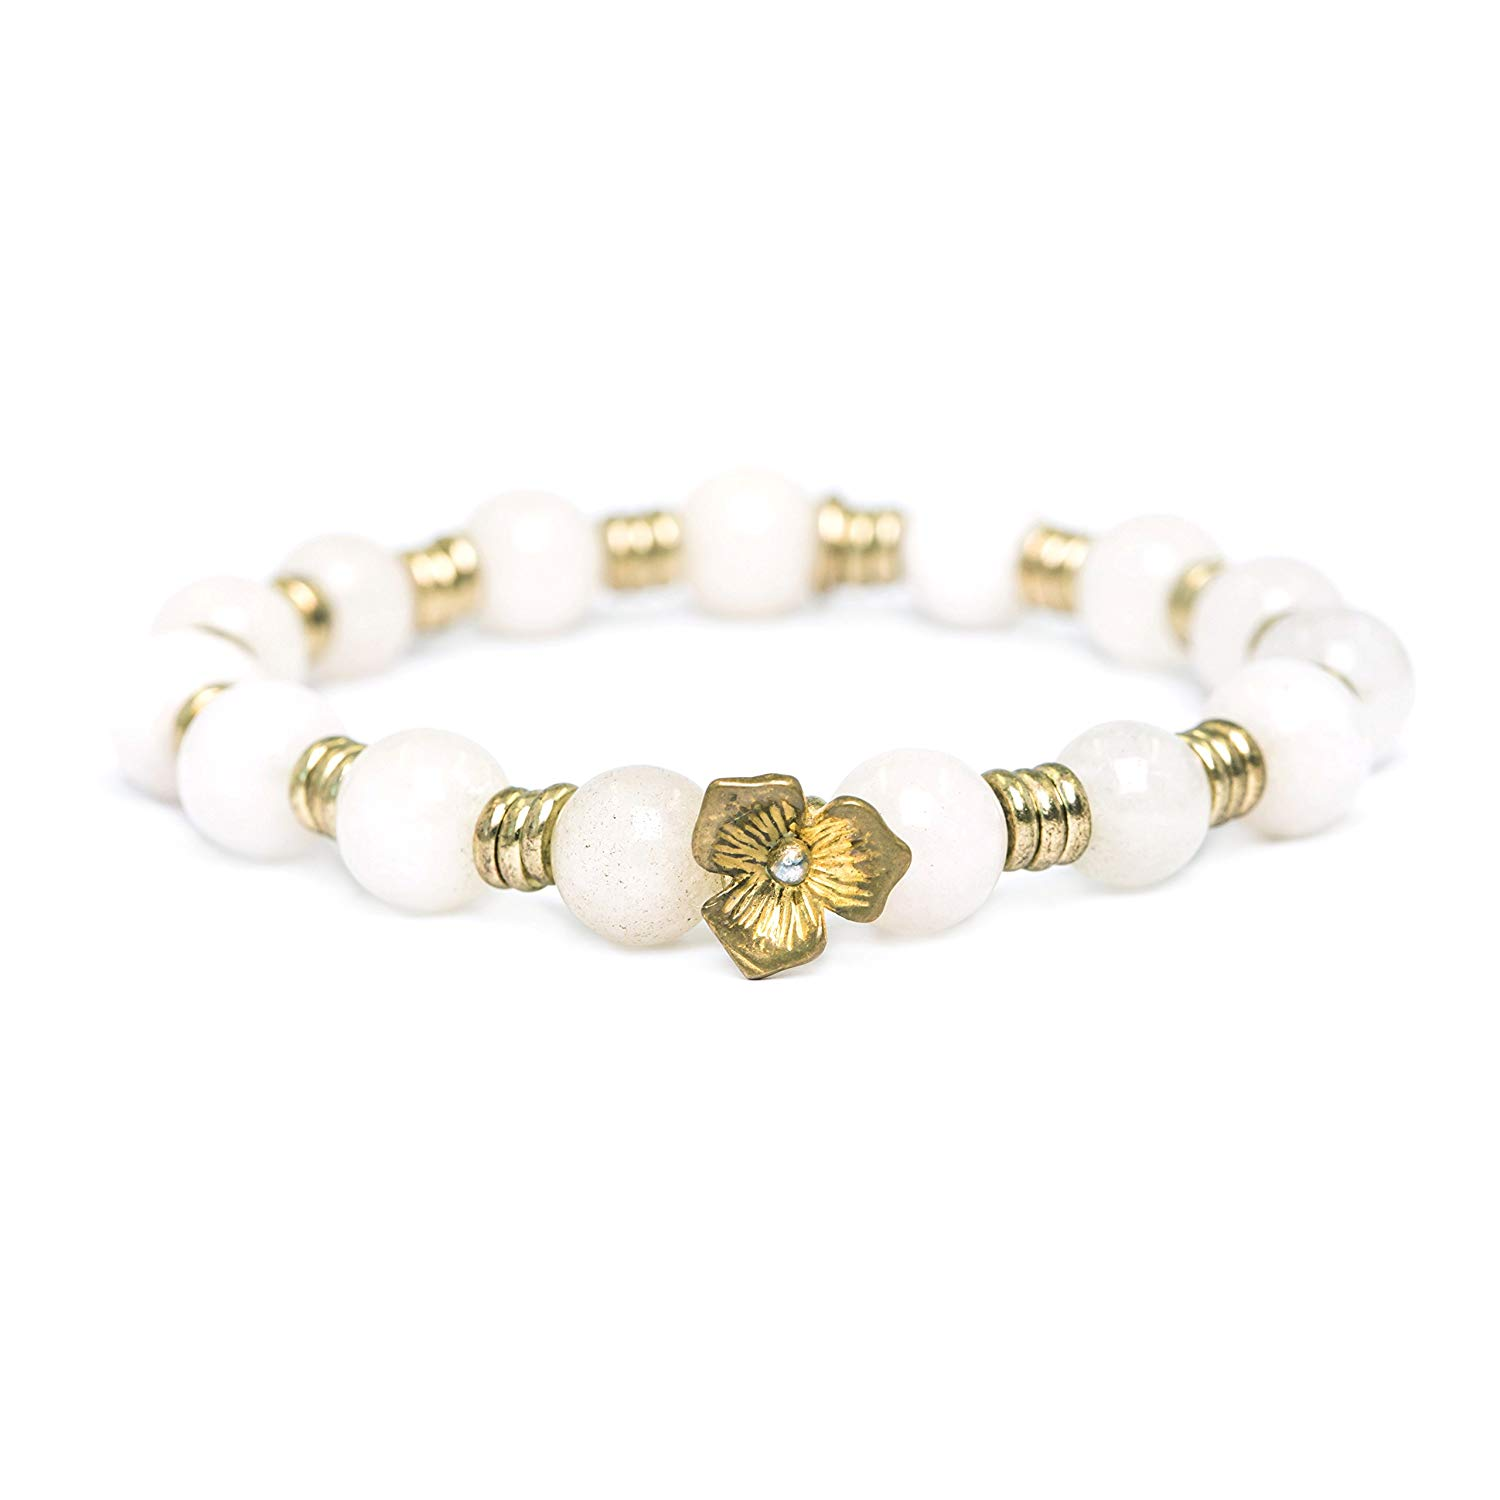 tom+alice Natural Gemstone 8MM Healing Beads Reiki Chakra Stretch Beaded Bracelets with Middle Ornament Womens Fashion (White Jade Gold Flower)